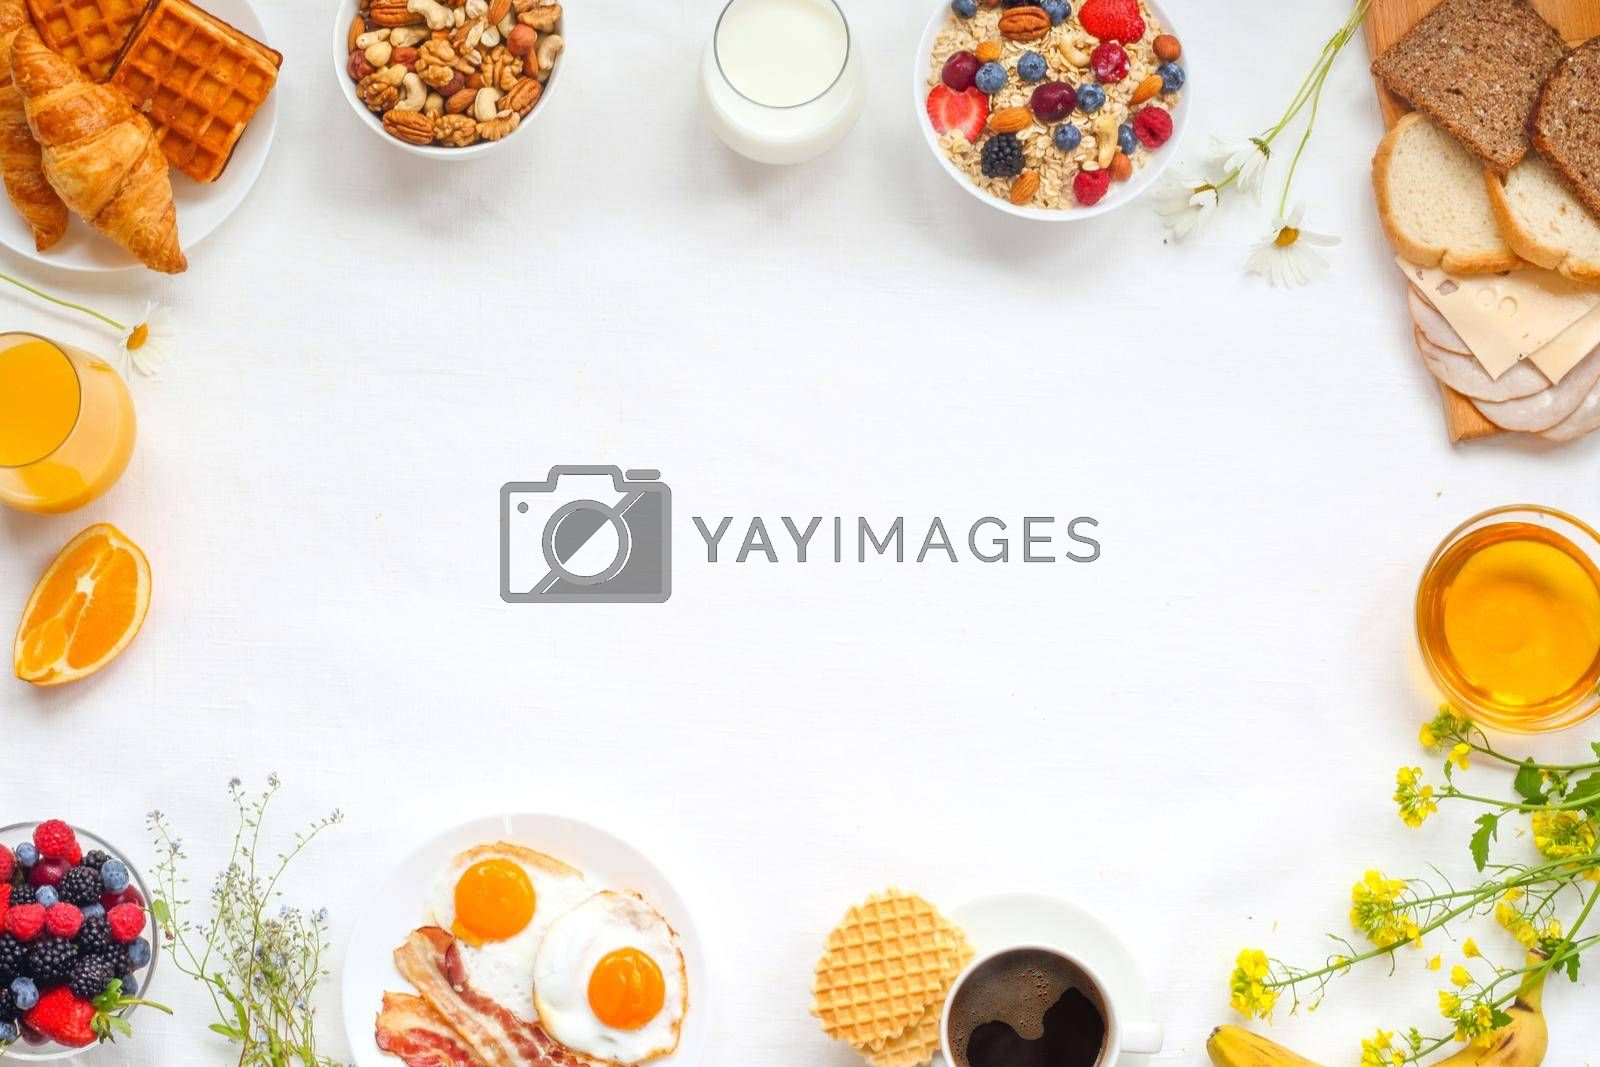 Healthy breakfast with muesli, fruits, berries, nuts, coffee, eggs, honey, oat grains and other on white background. Flat lay, top view, copy space for text, frame